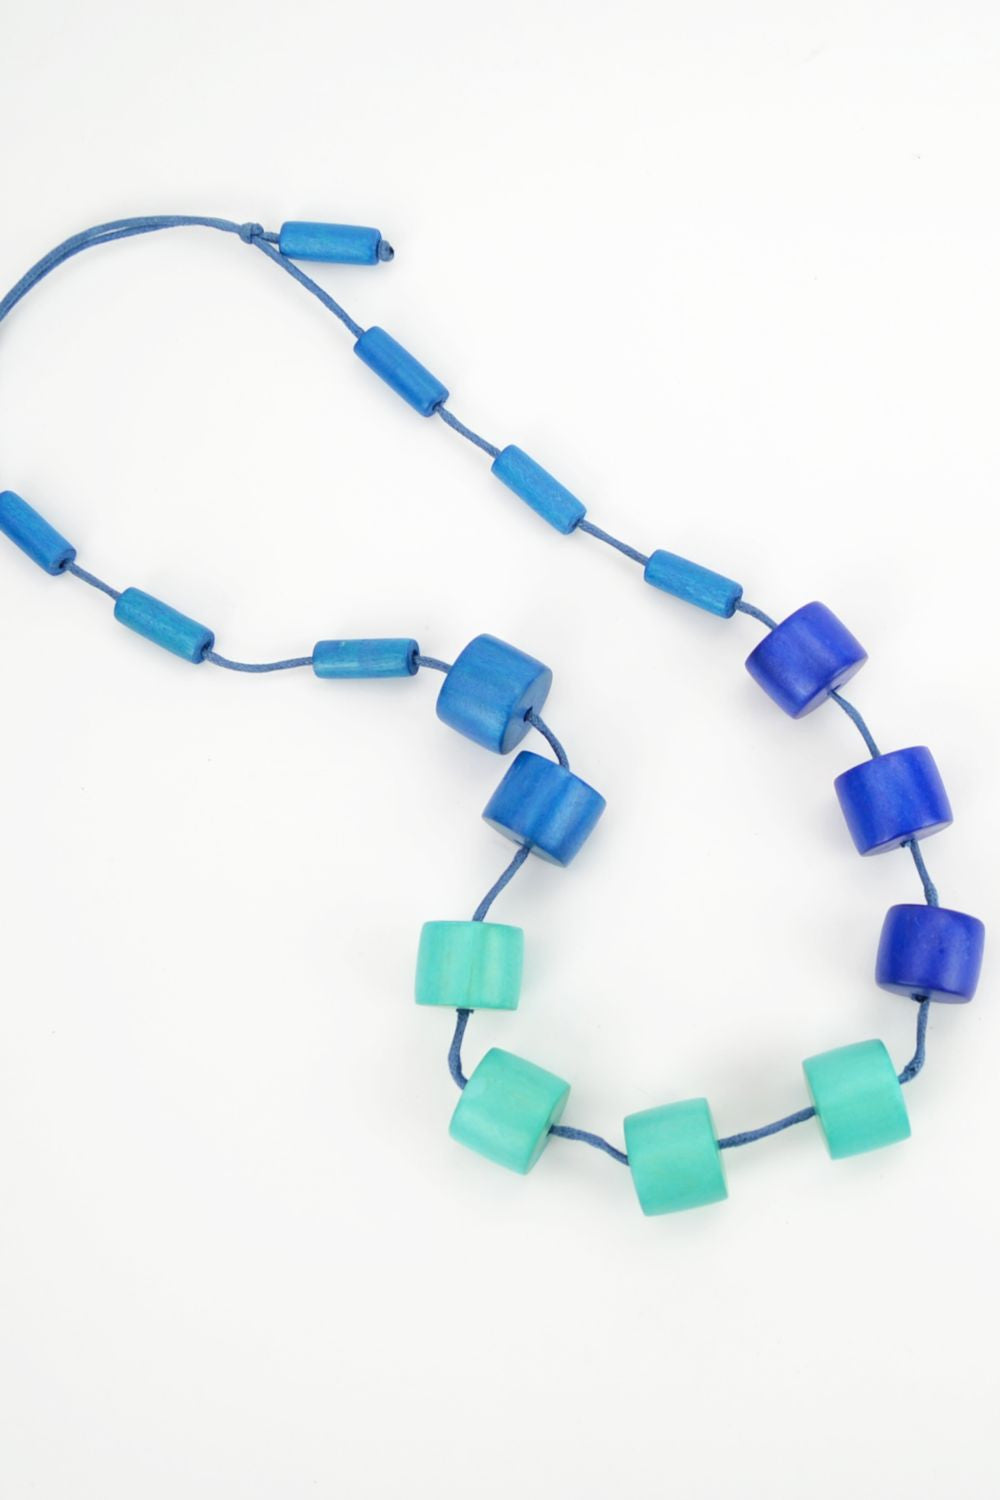 Pretty in Blue Necklace - at I Love Tunics @ www.ilovetunics.com = Number One! Tunics Destination